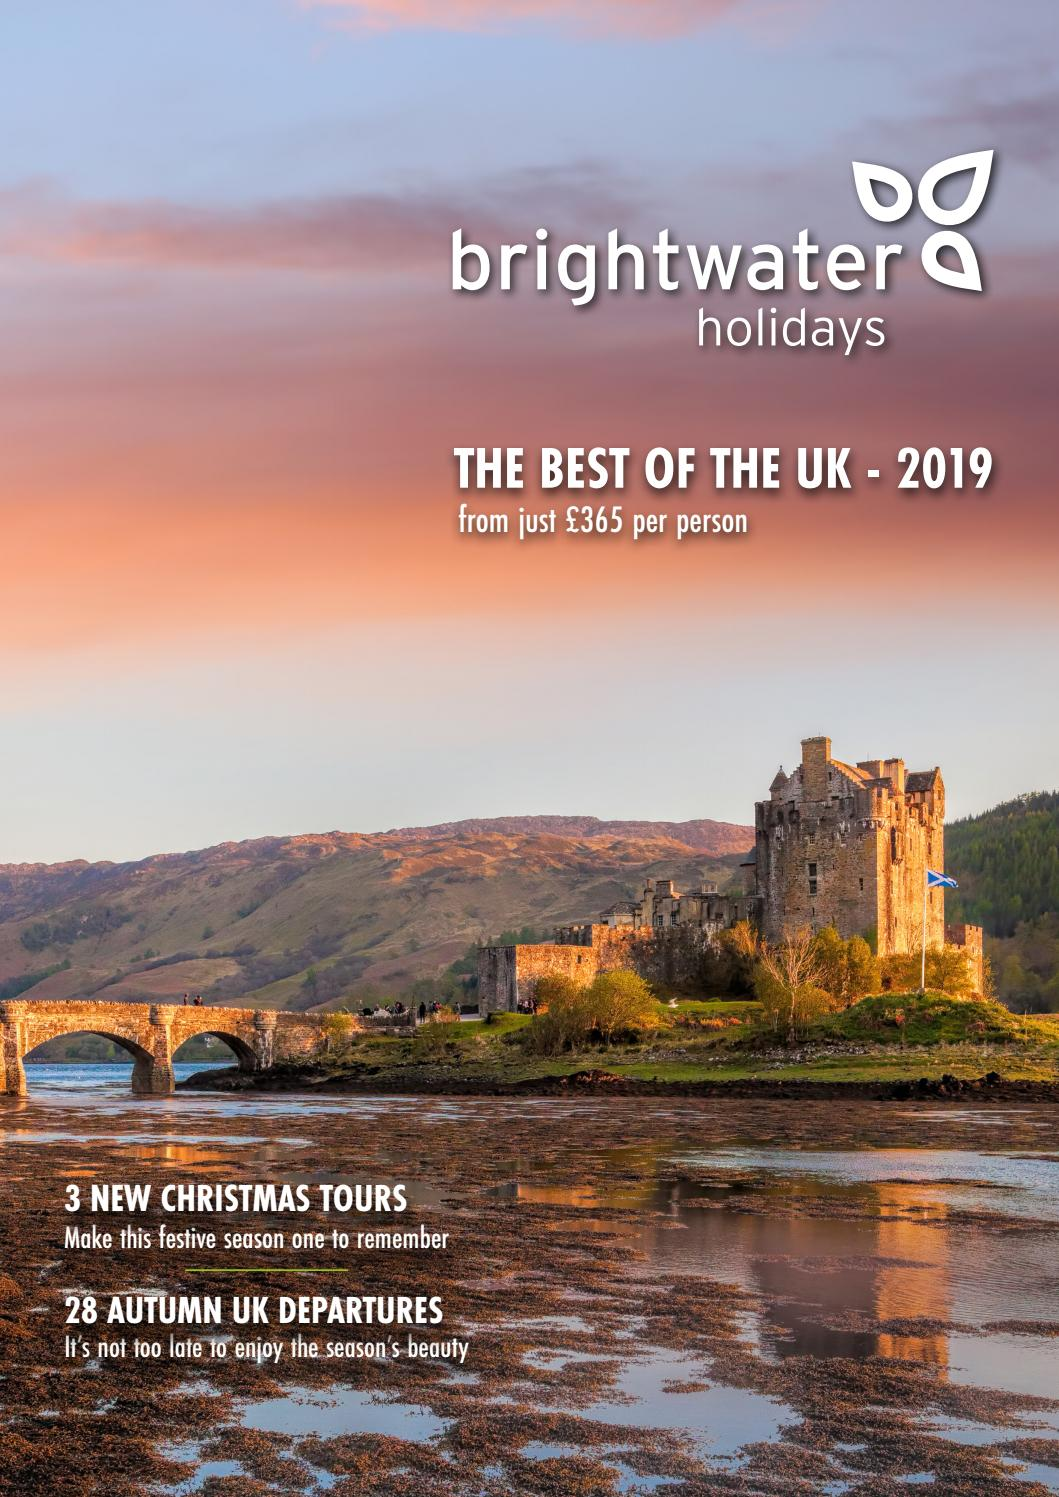 Brightwater Holidays - The best of the UK in 2019 by